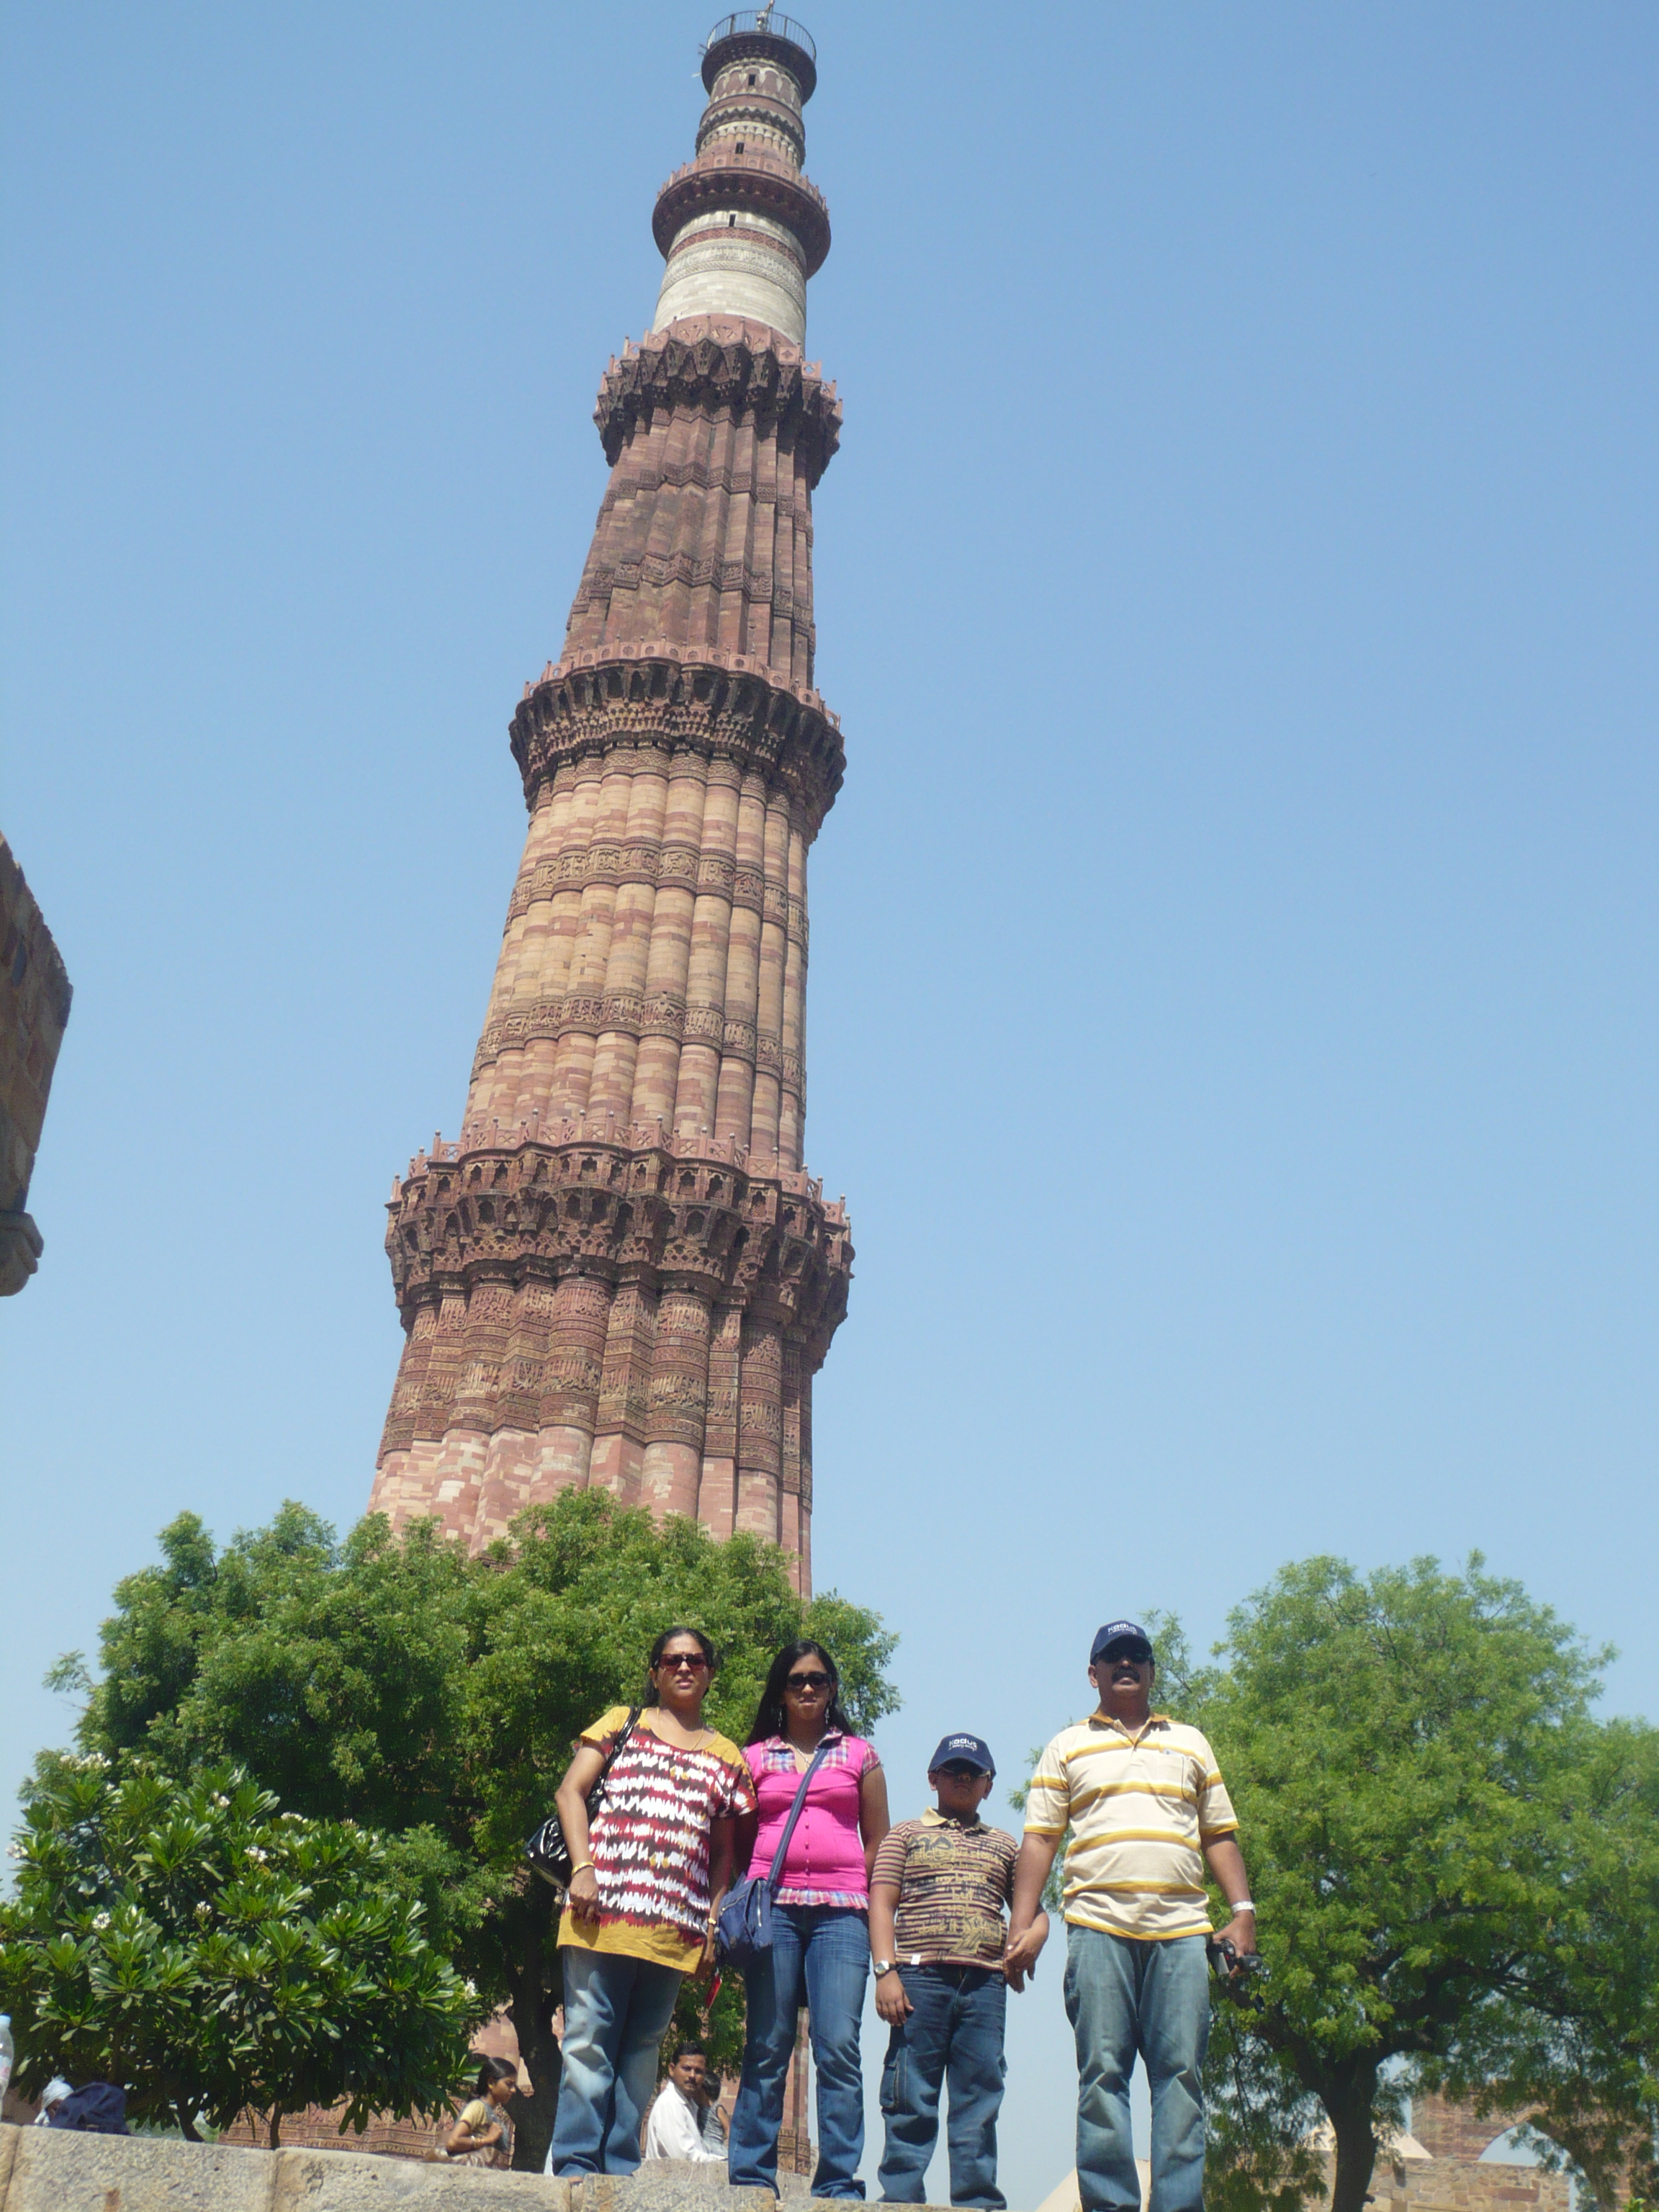 Amazing experience  with family at the Qutb Minar